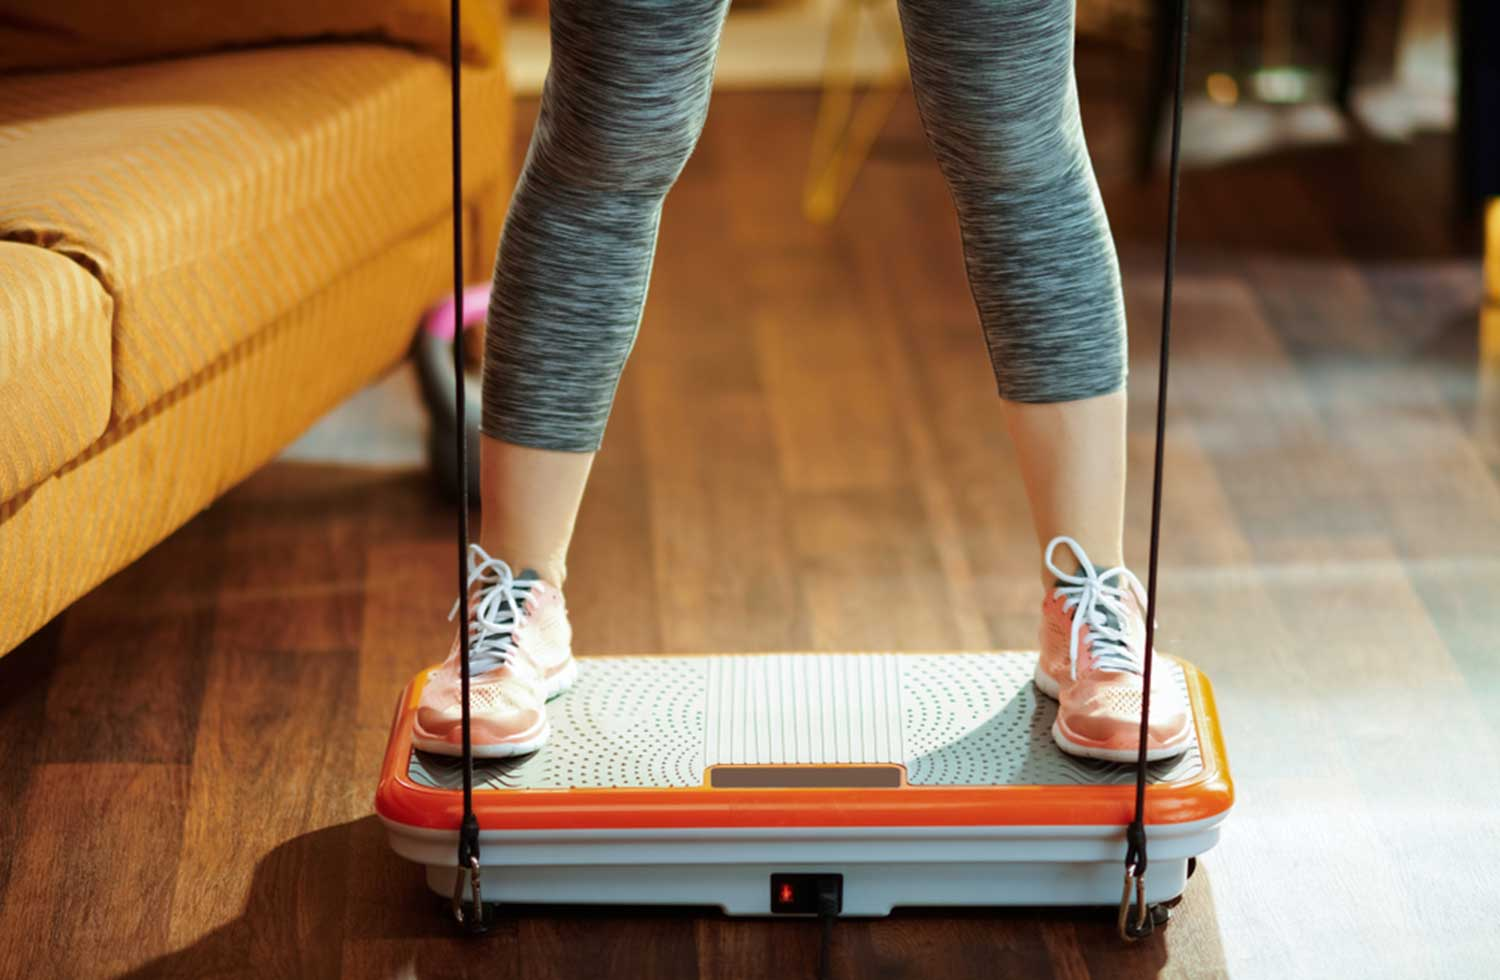 Best Vibration Plate for Weight loss and Toning